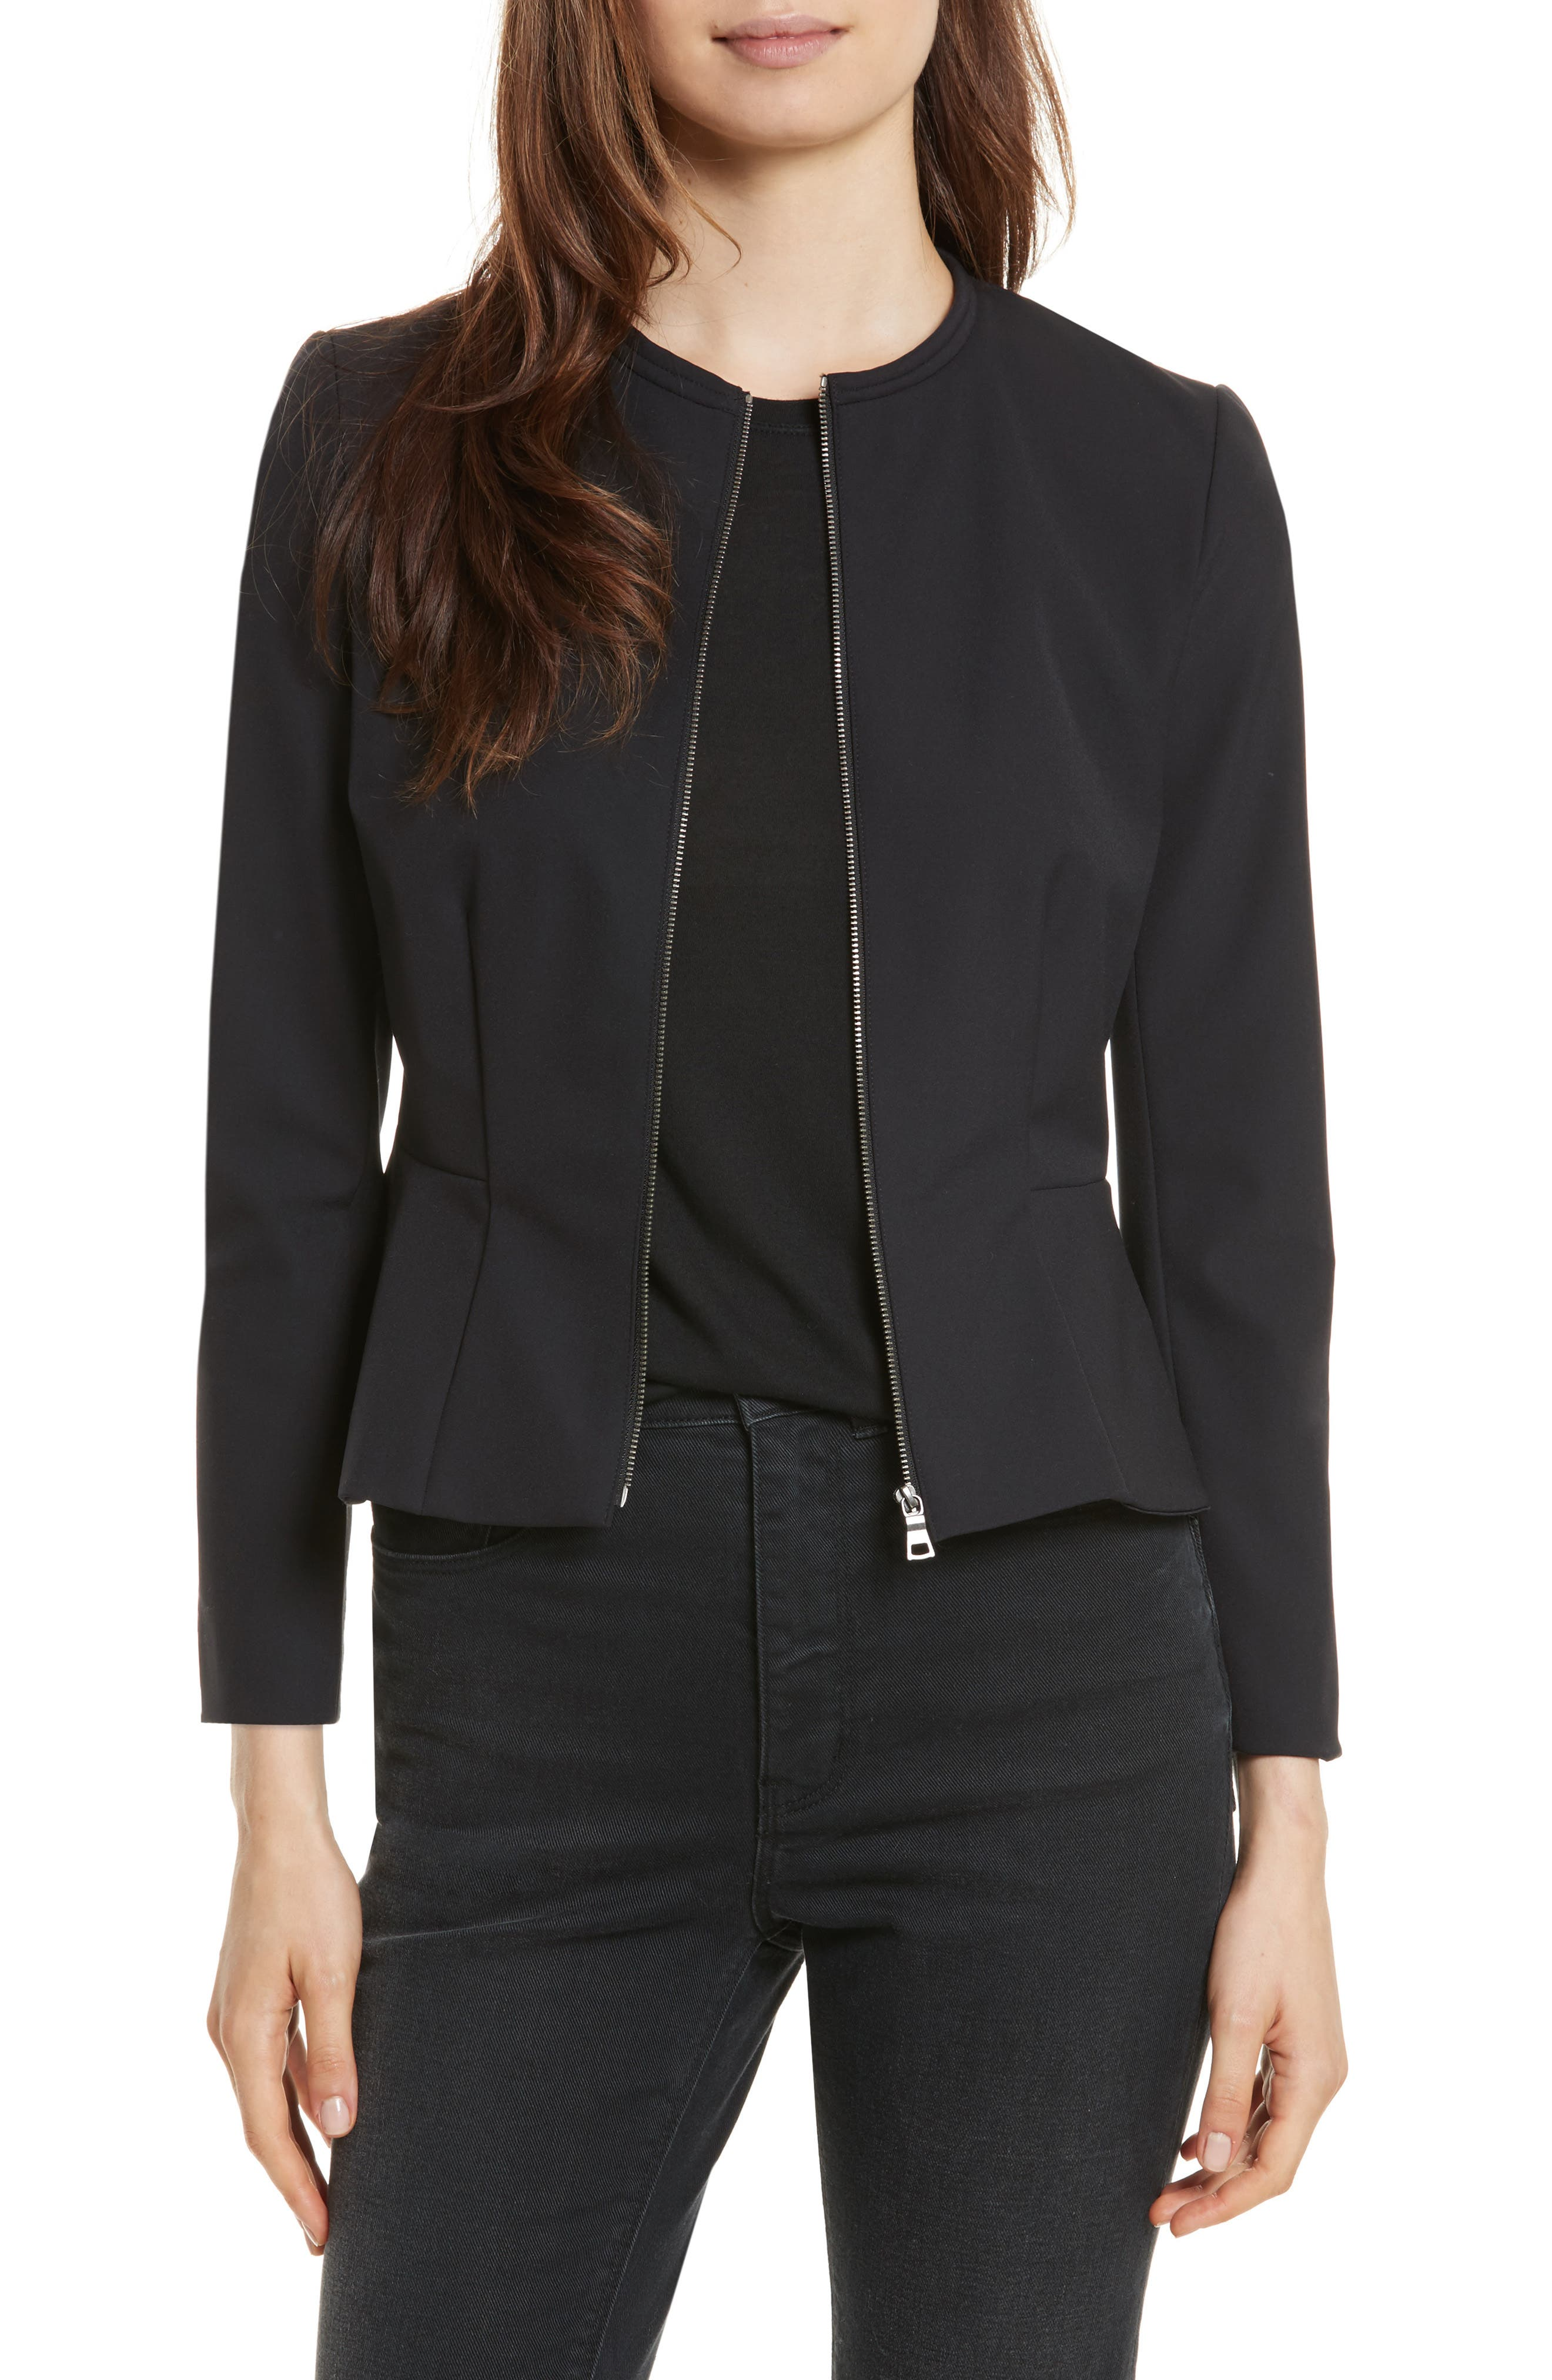 Alternate Image 1 Selected - Rebecca Taylor Ava Peplum Jacket